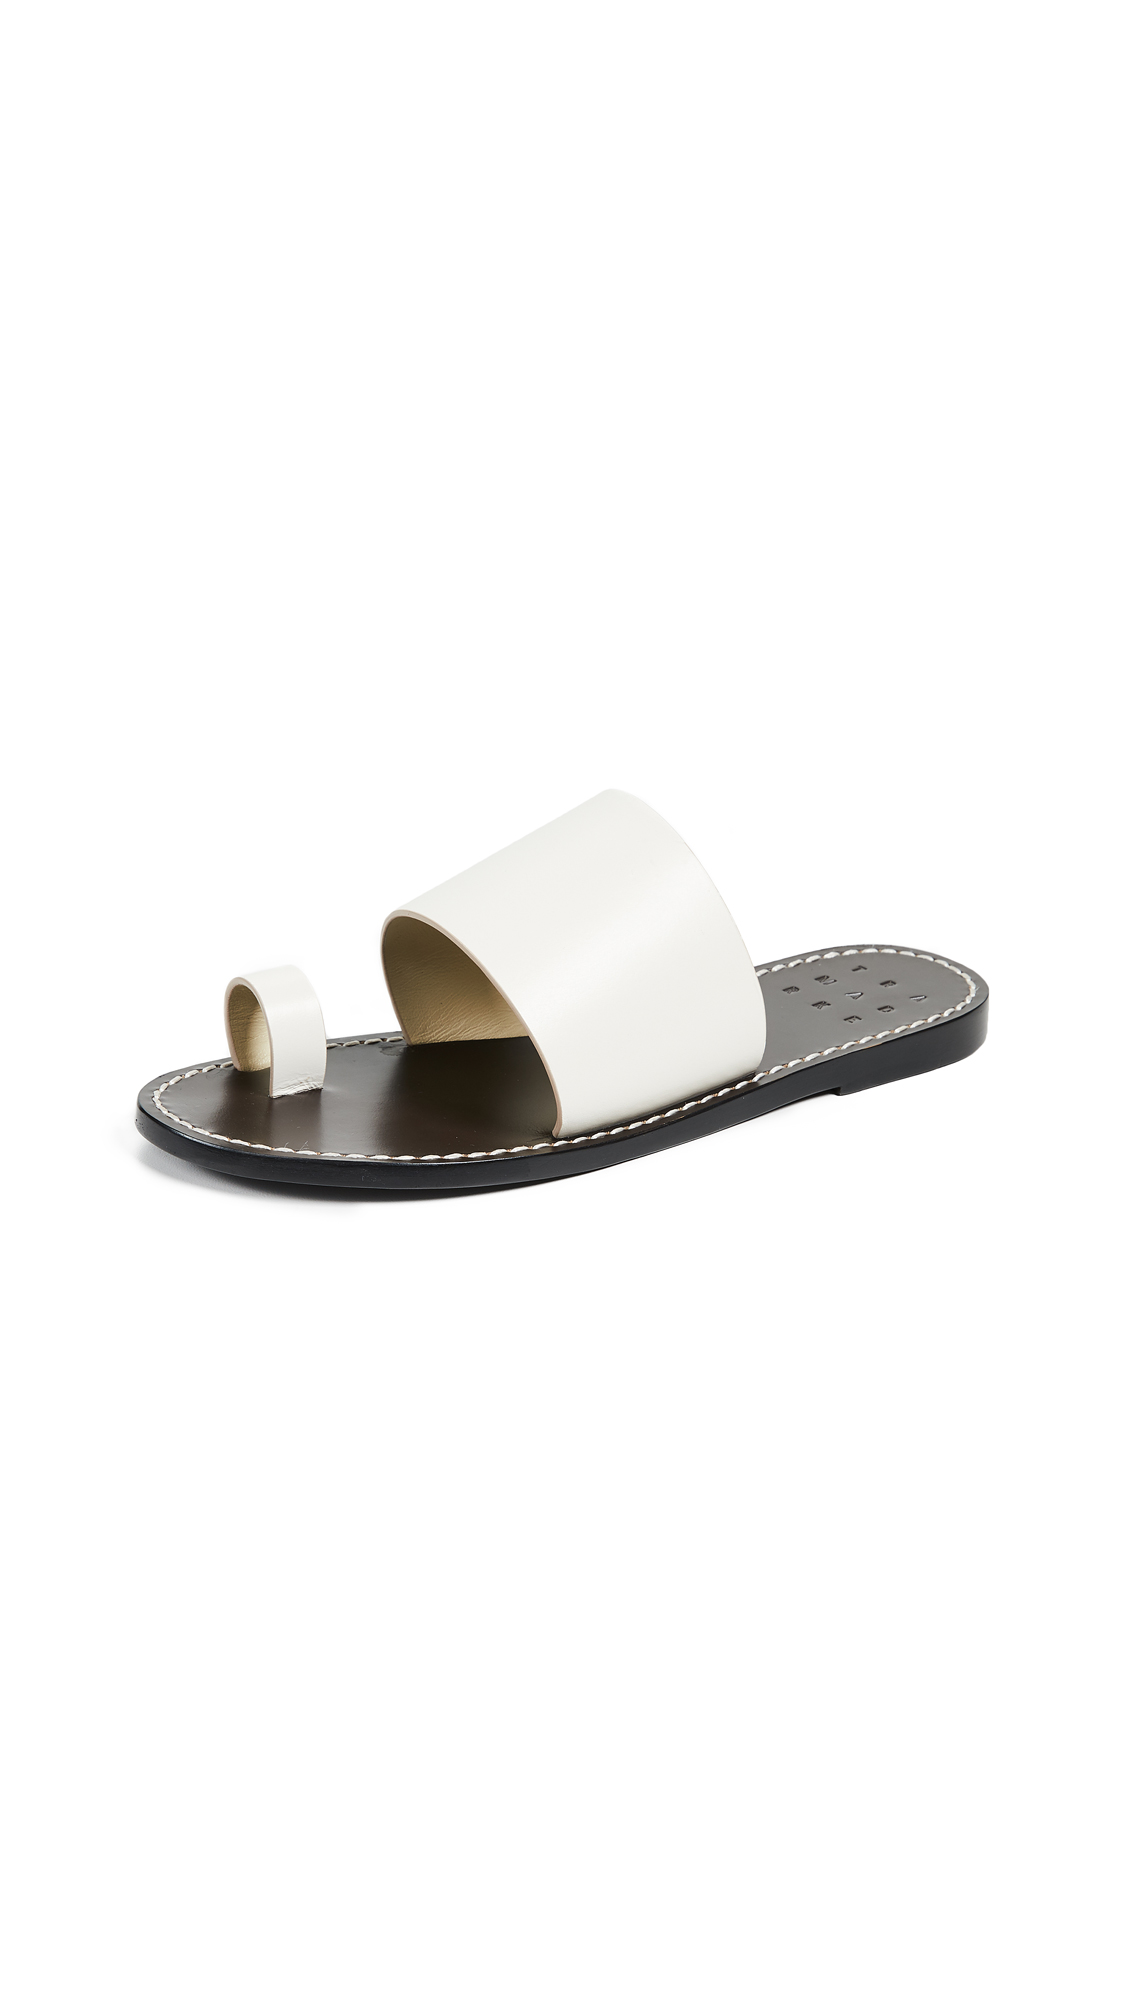 Trademark Taos Slides with Toe Strap